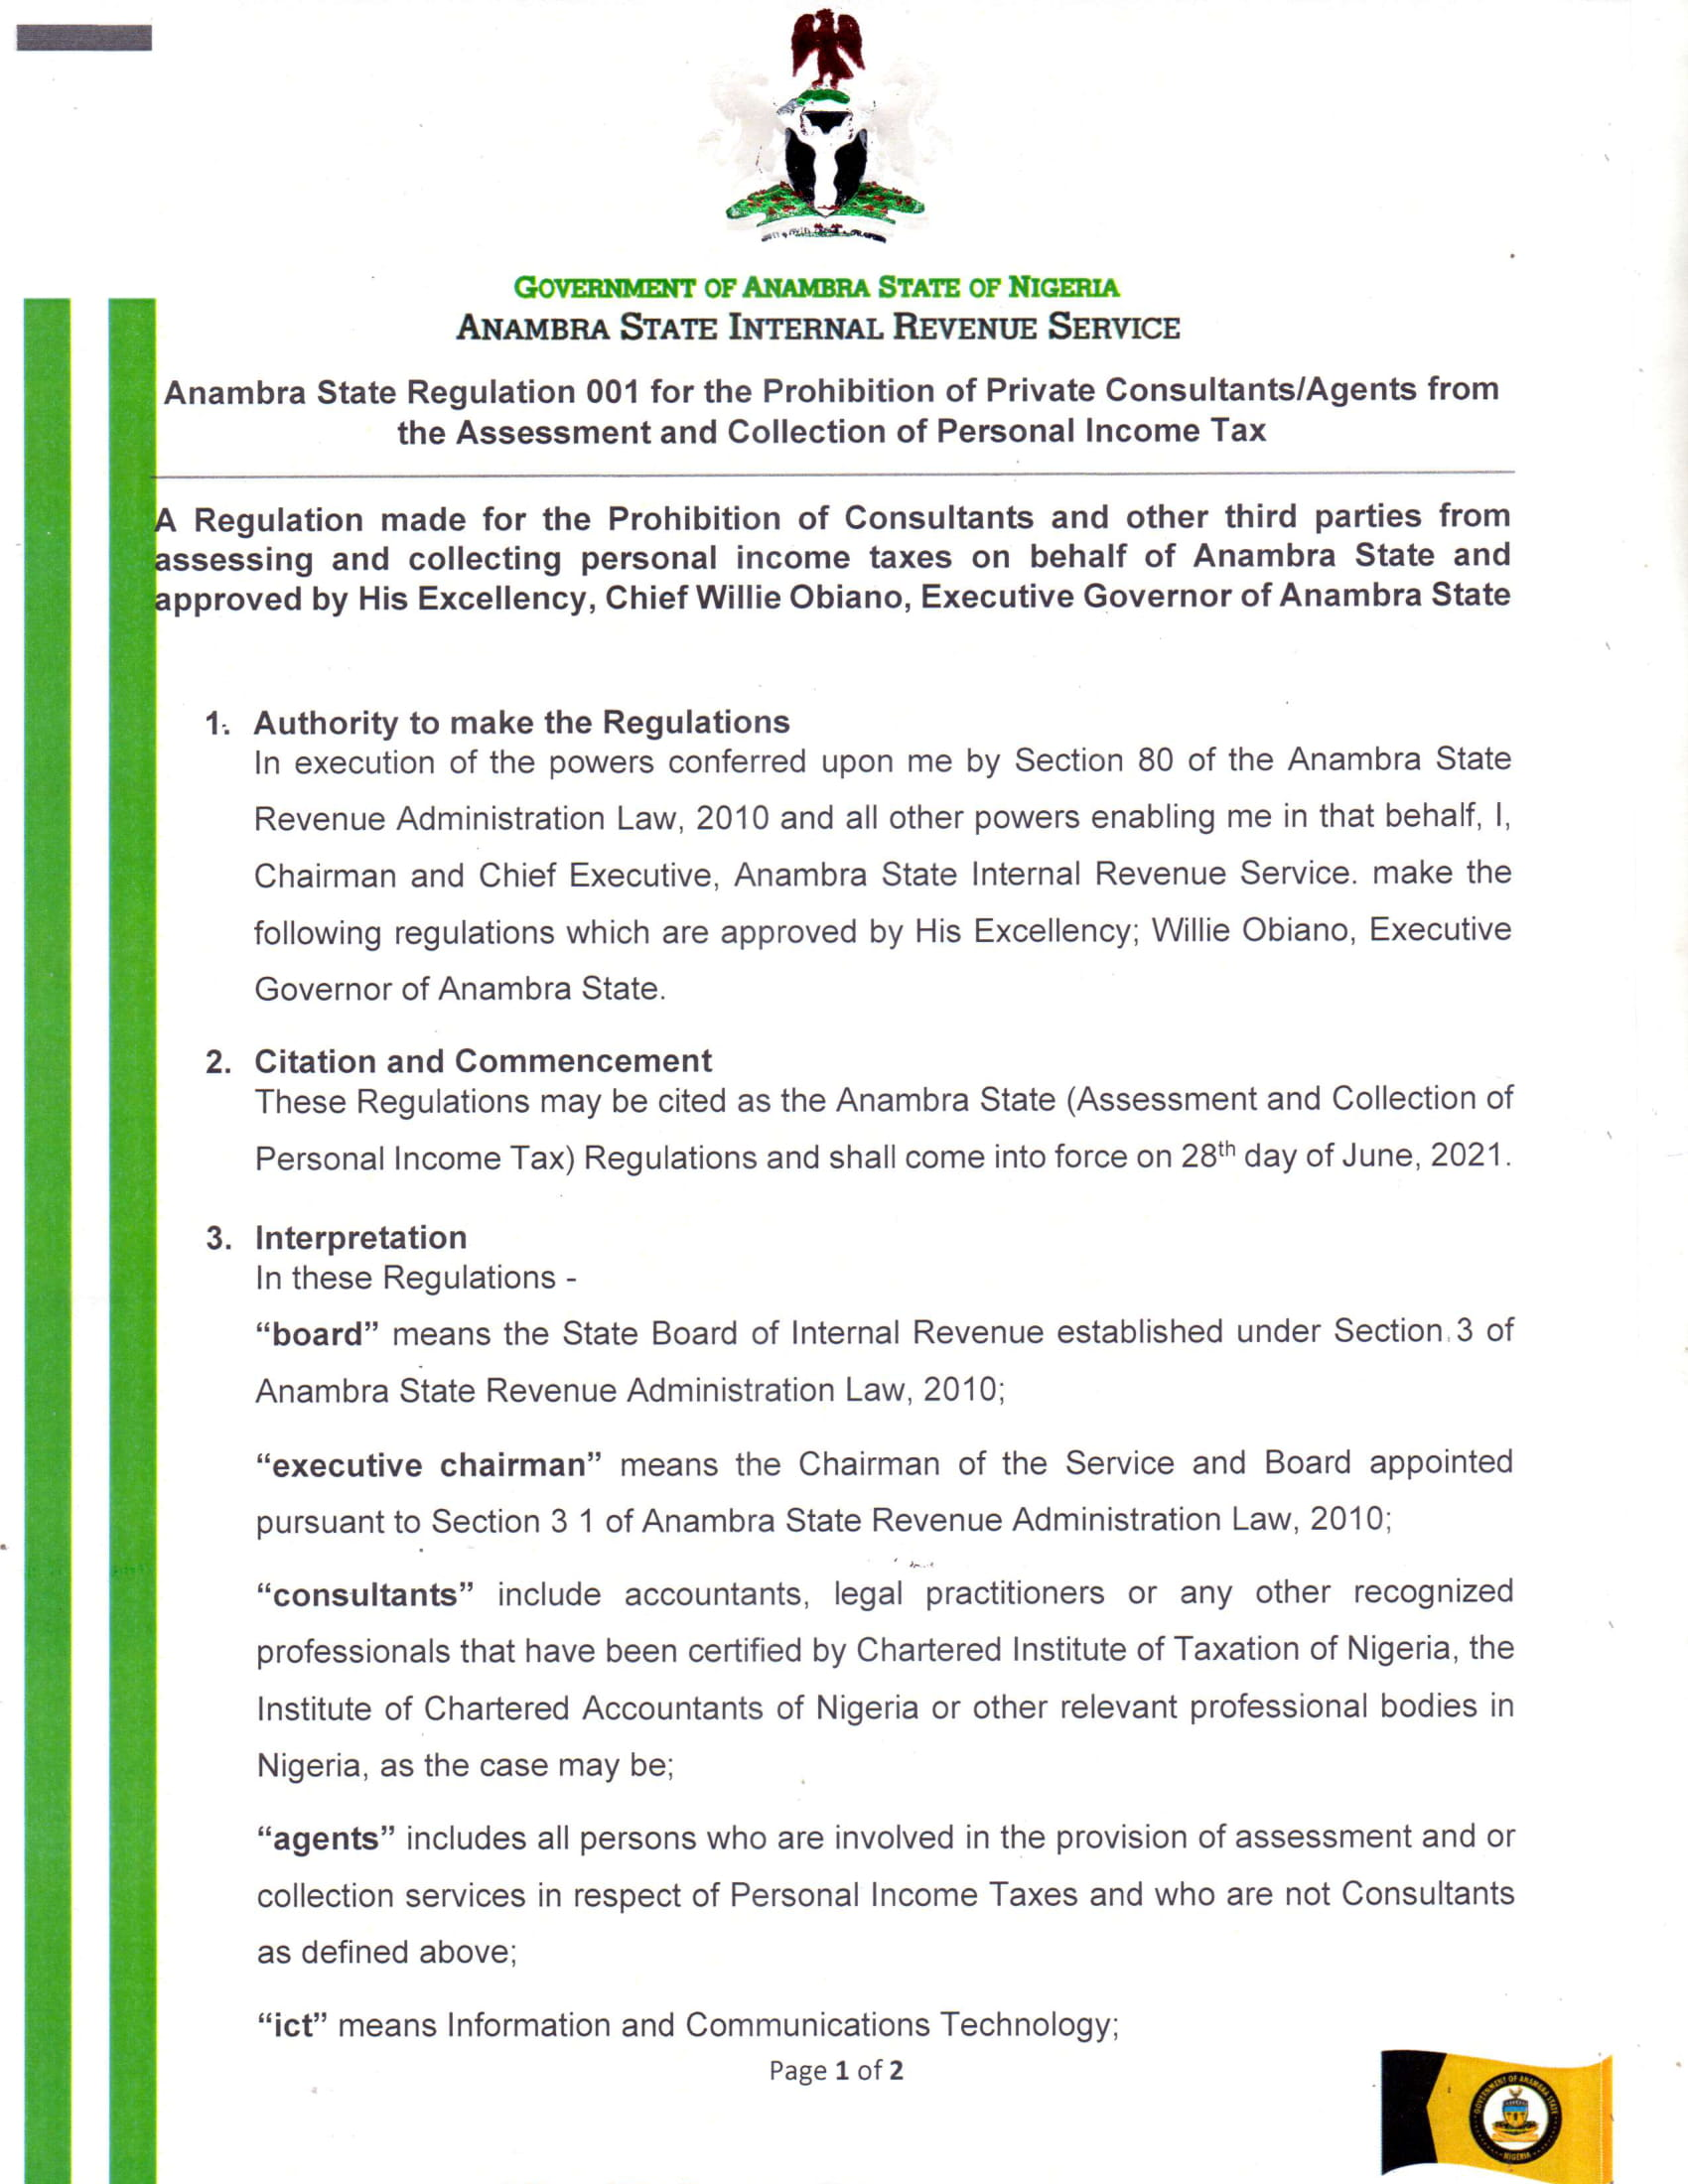 https://airs.an.gov.ng/wp-content/uploads/2021/06/AIRS-Regulation-1.jpg